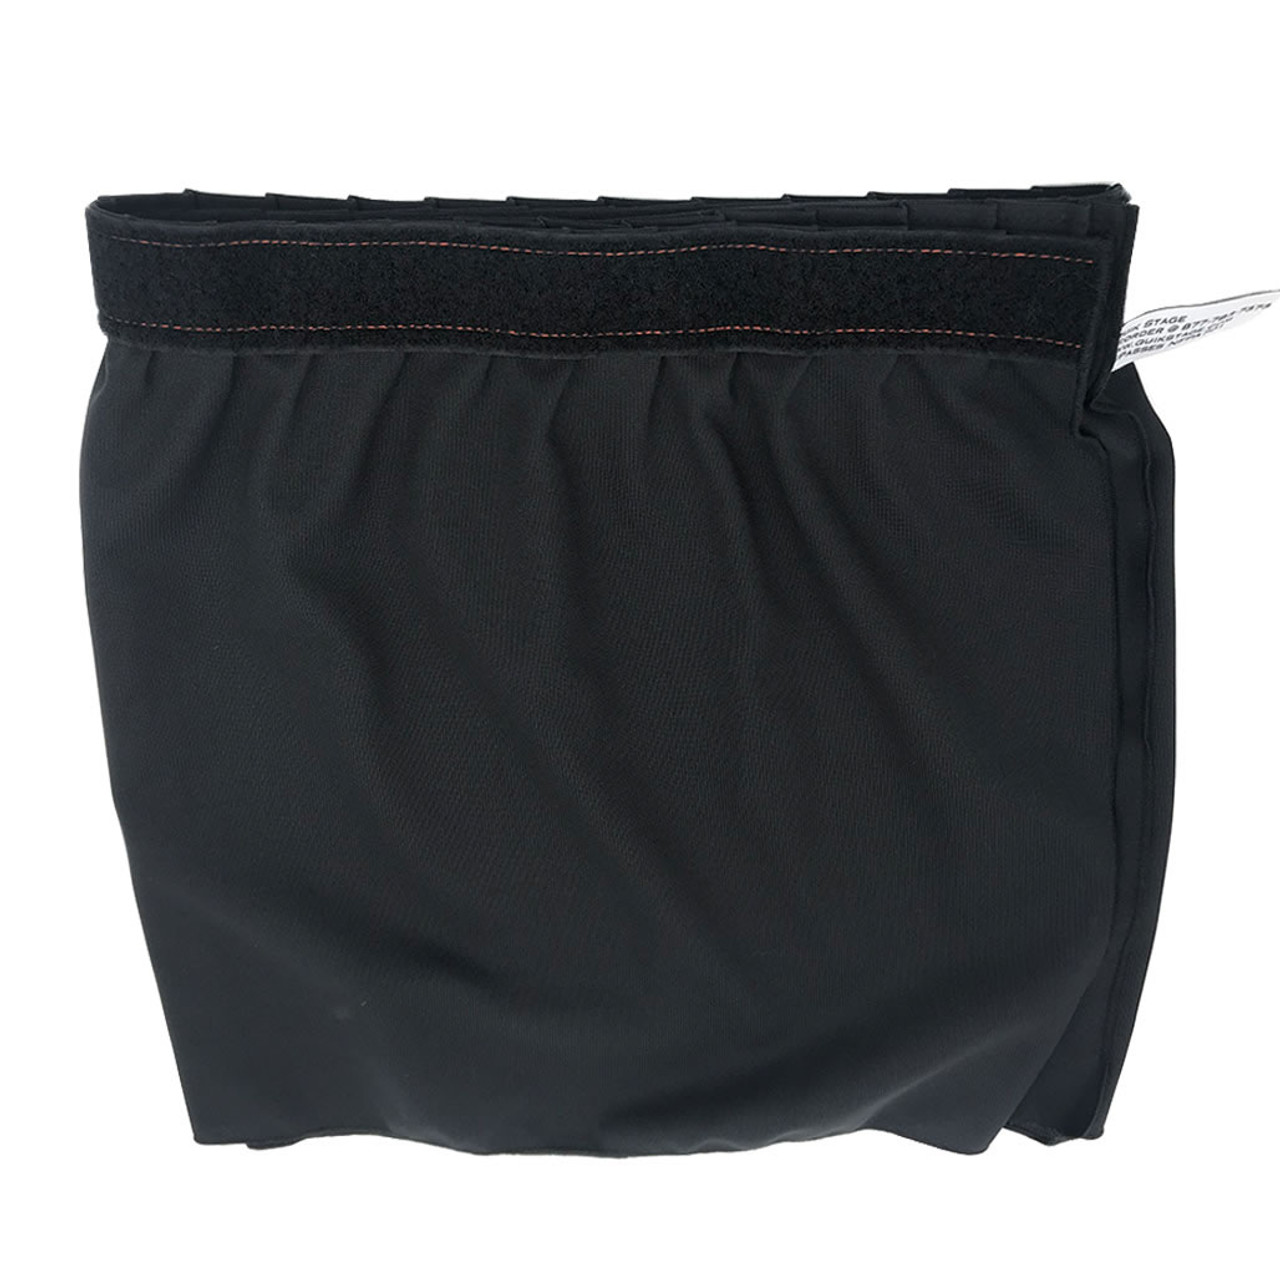 40 Inches High Best Value Black Expo Pleat Polyester Stage Skirting with Velcro. FR Rated. - Back side.